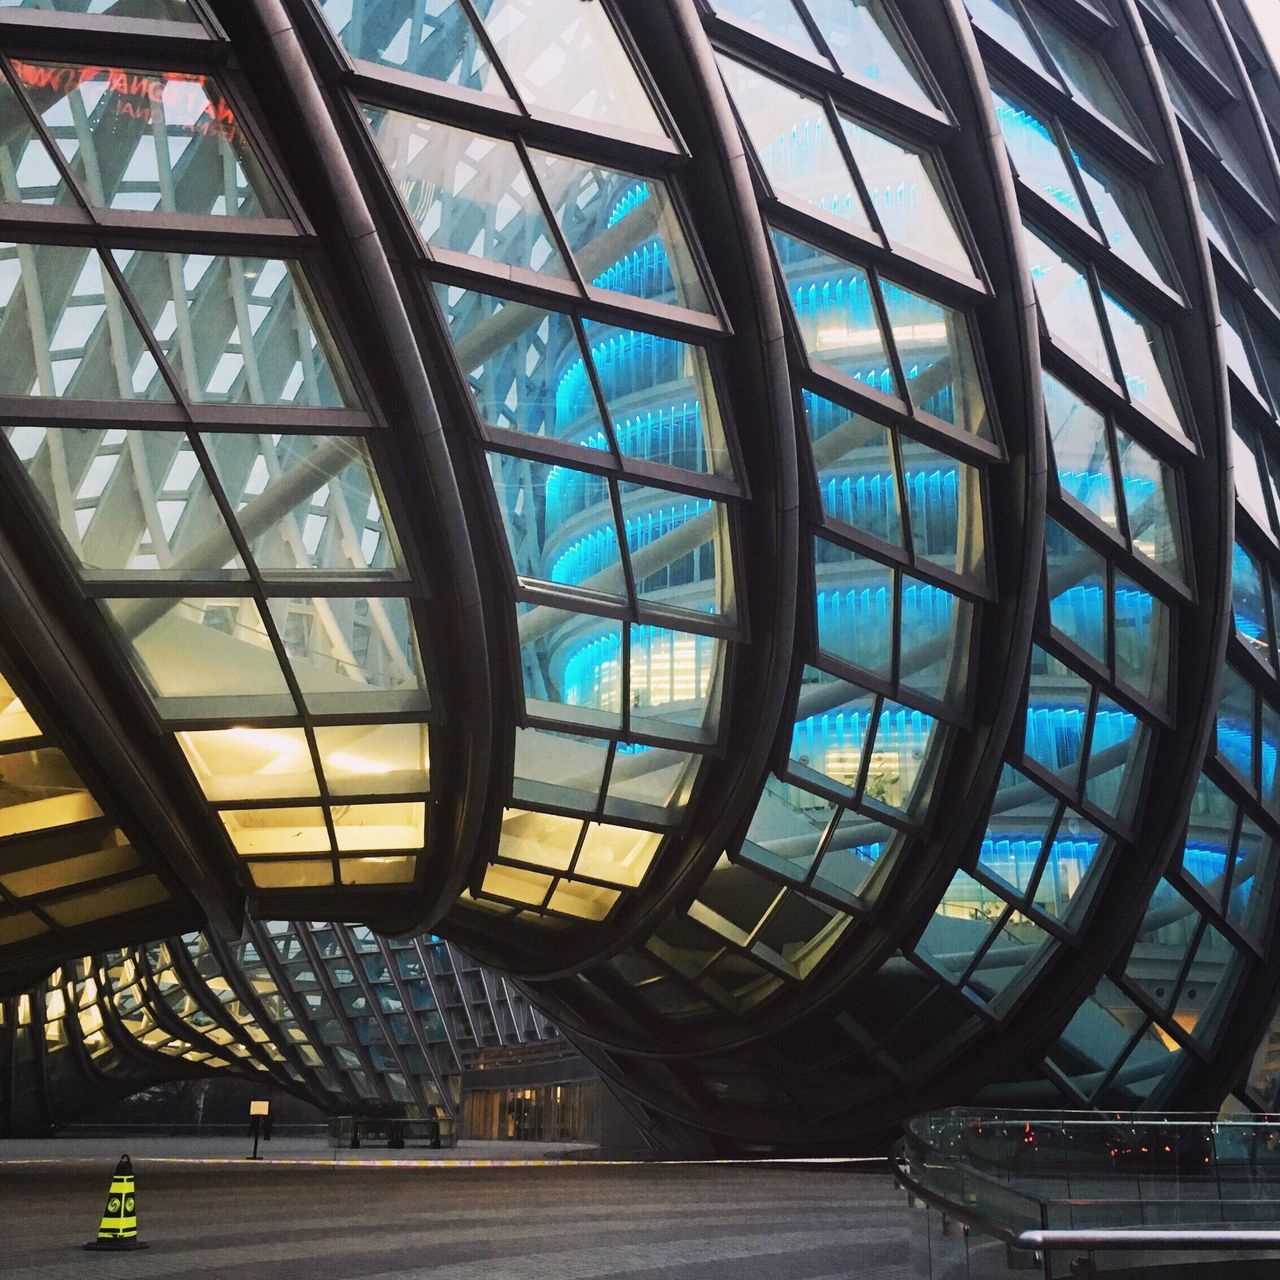 The Architect - 2017 EyeEm Awards Glass - Material Architecture Built Structure Indoors  Modern Day Travel Destinations Low Angle View No People City Clock Exterior Exterior Design Colorful Building Exterior Building